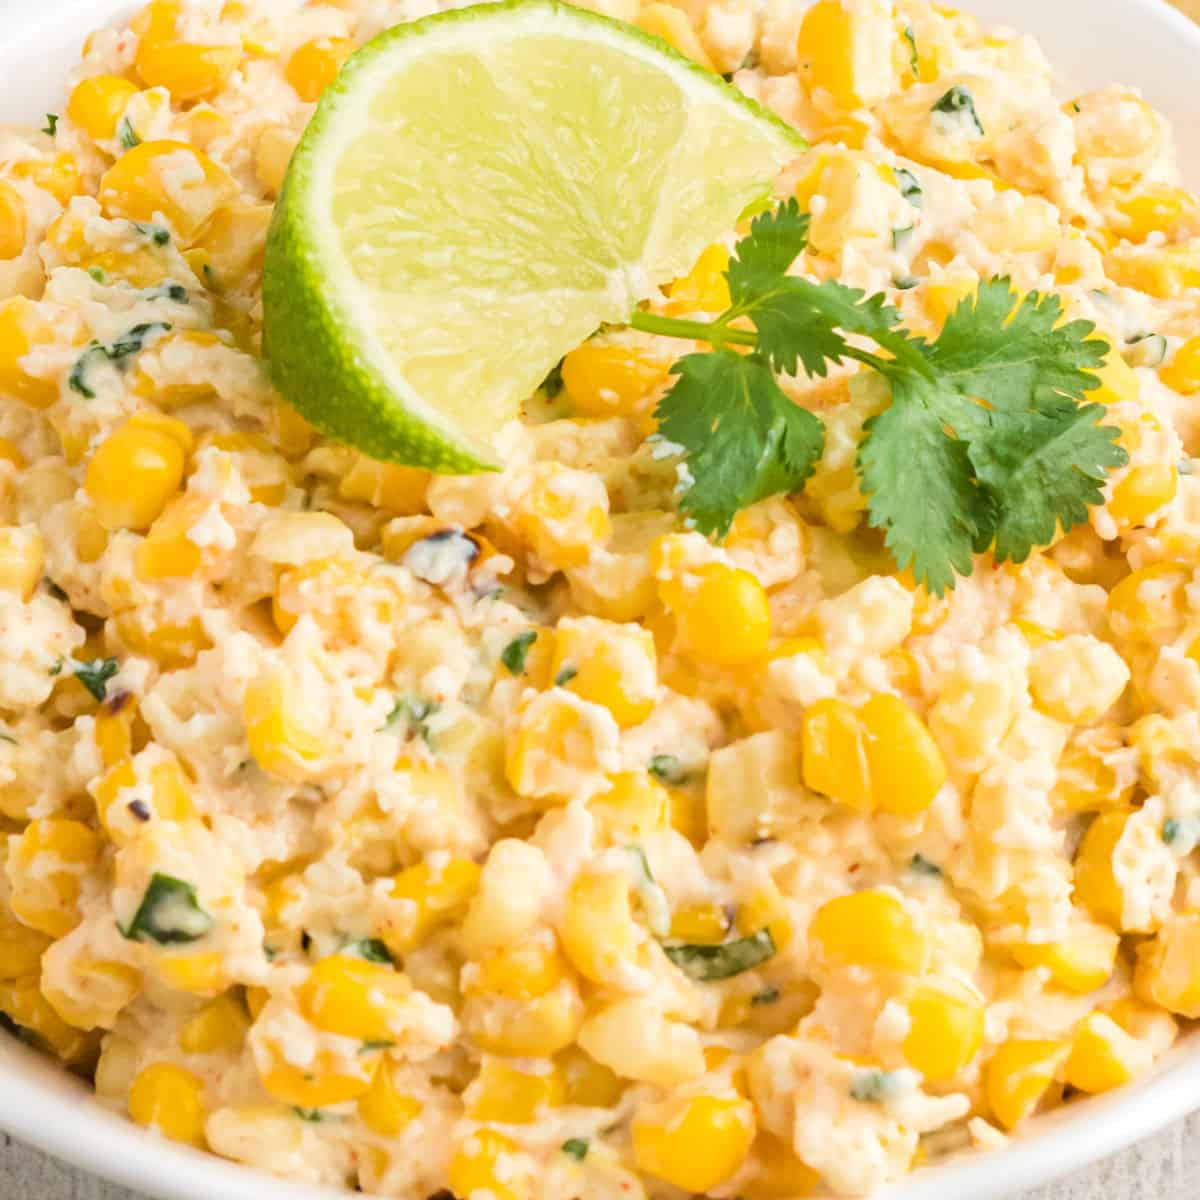 square close up image of mexican street corn dip in a bowl topped with cilantro and a lime wedge